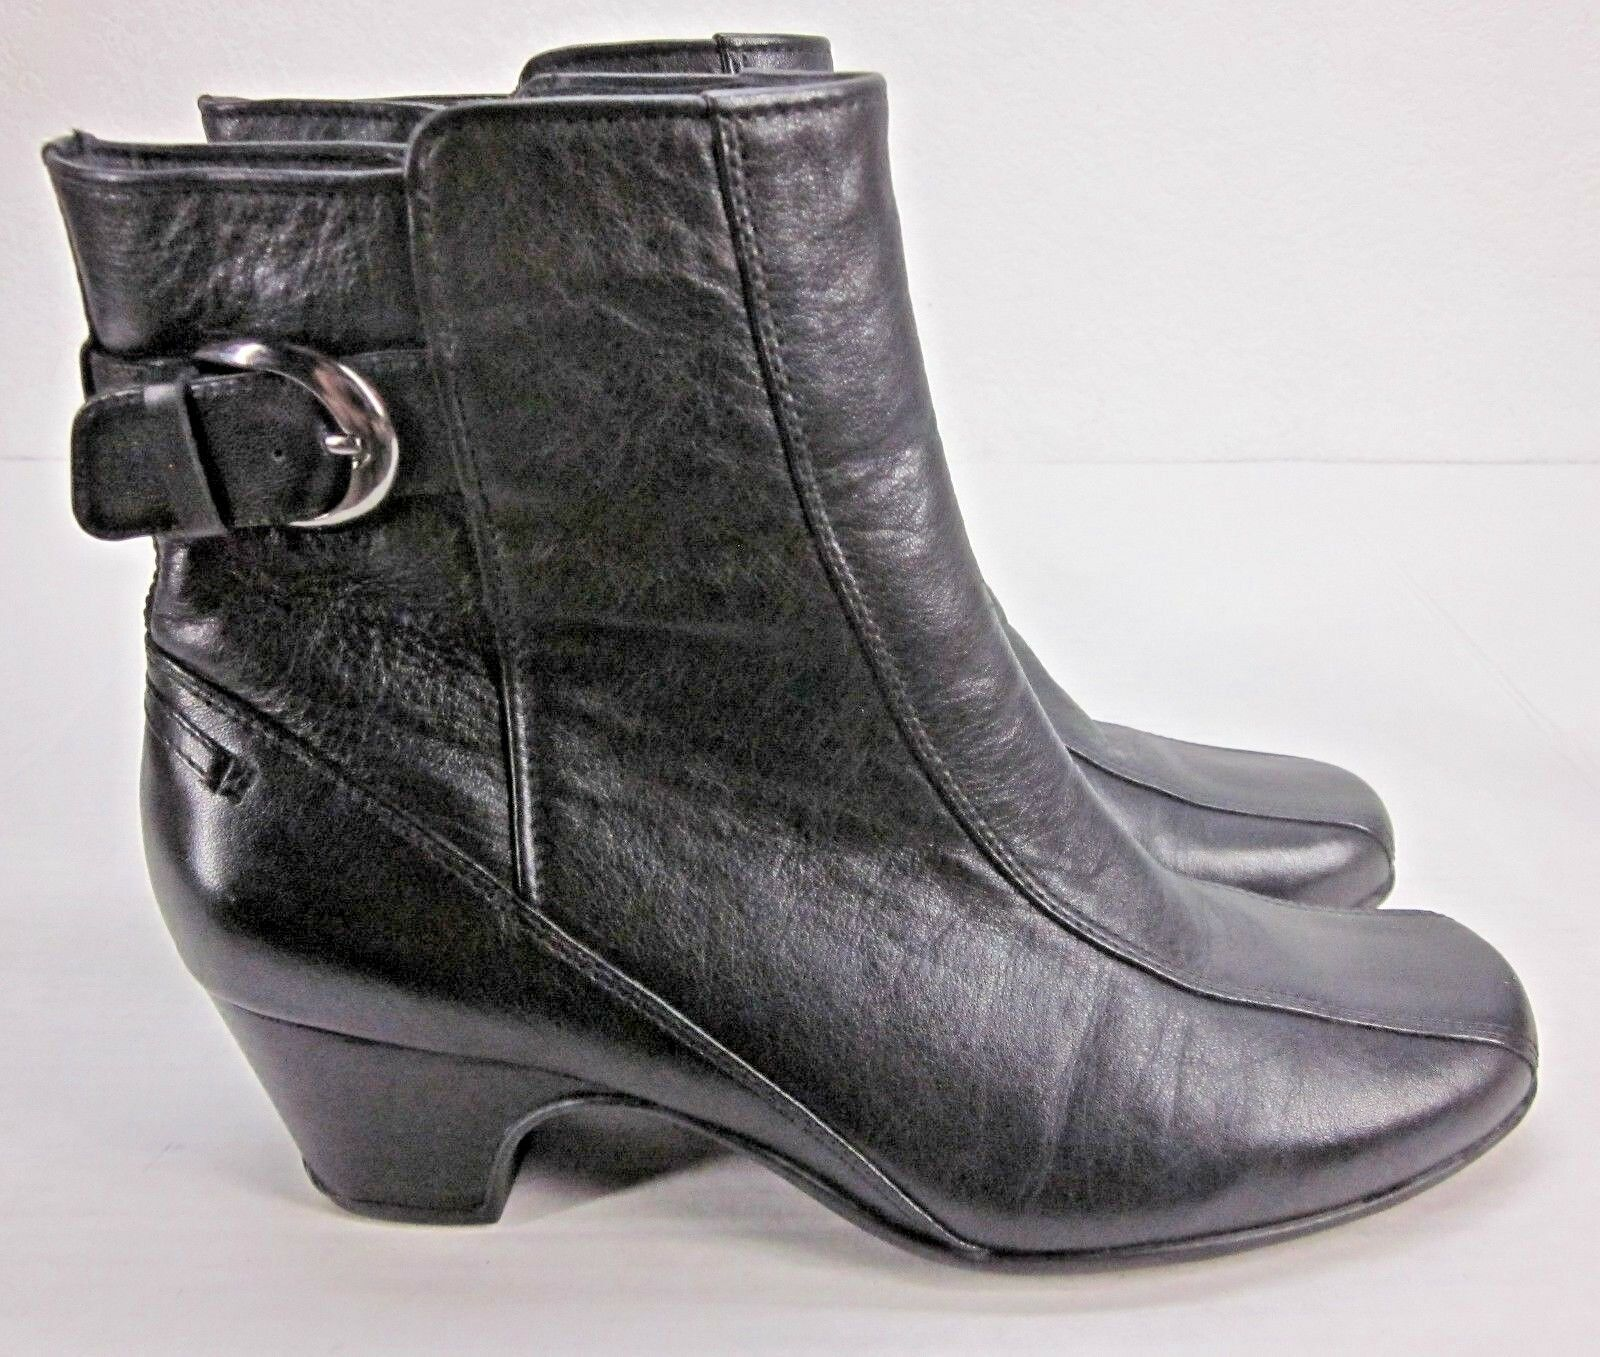 CLARKS Artisan Women's Dara II Boot Inside Zip Buckle Accent Black Leather 8.5M